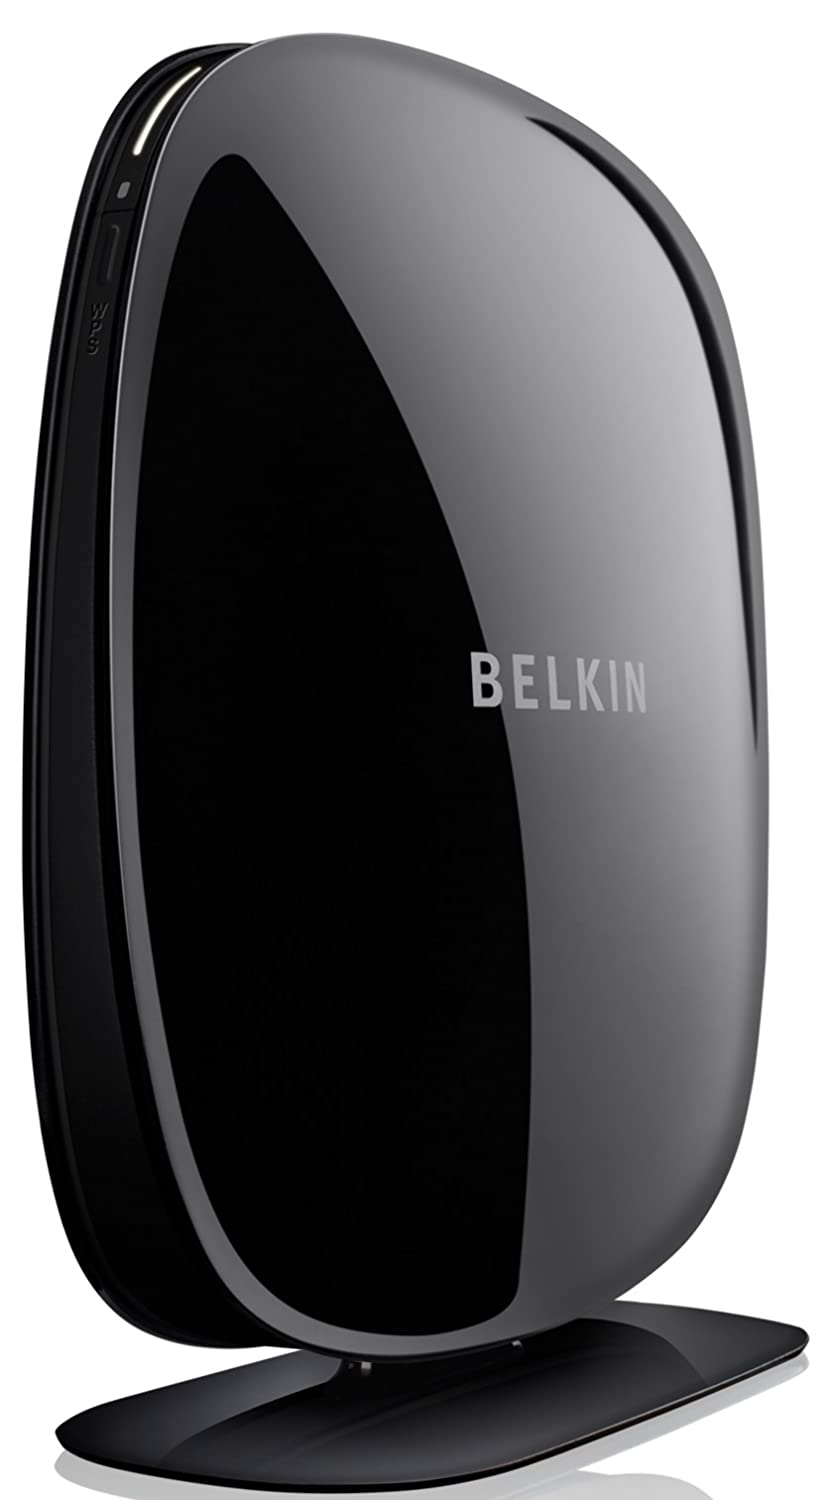 Belkin Wireless Range Extender: Amazon.de: Computer & Zubehör